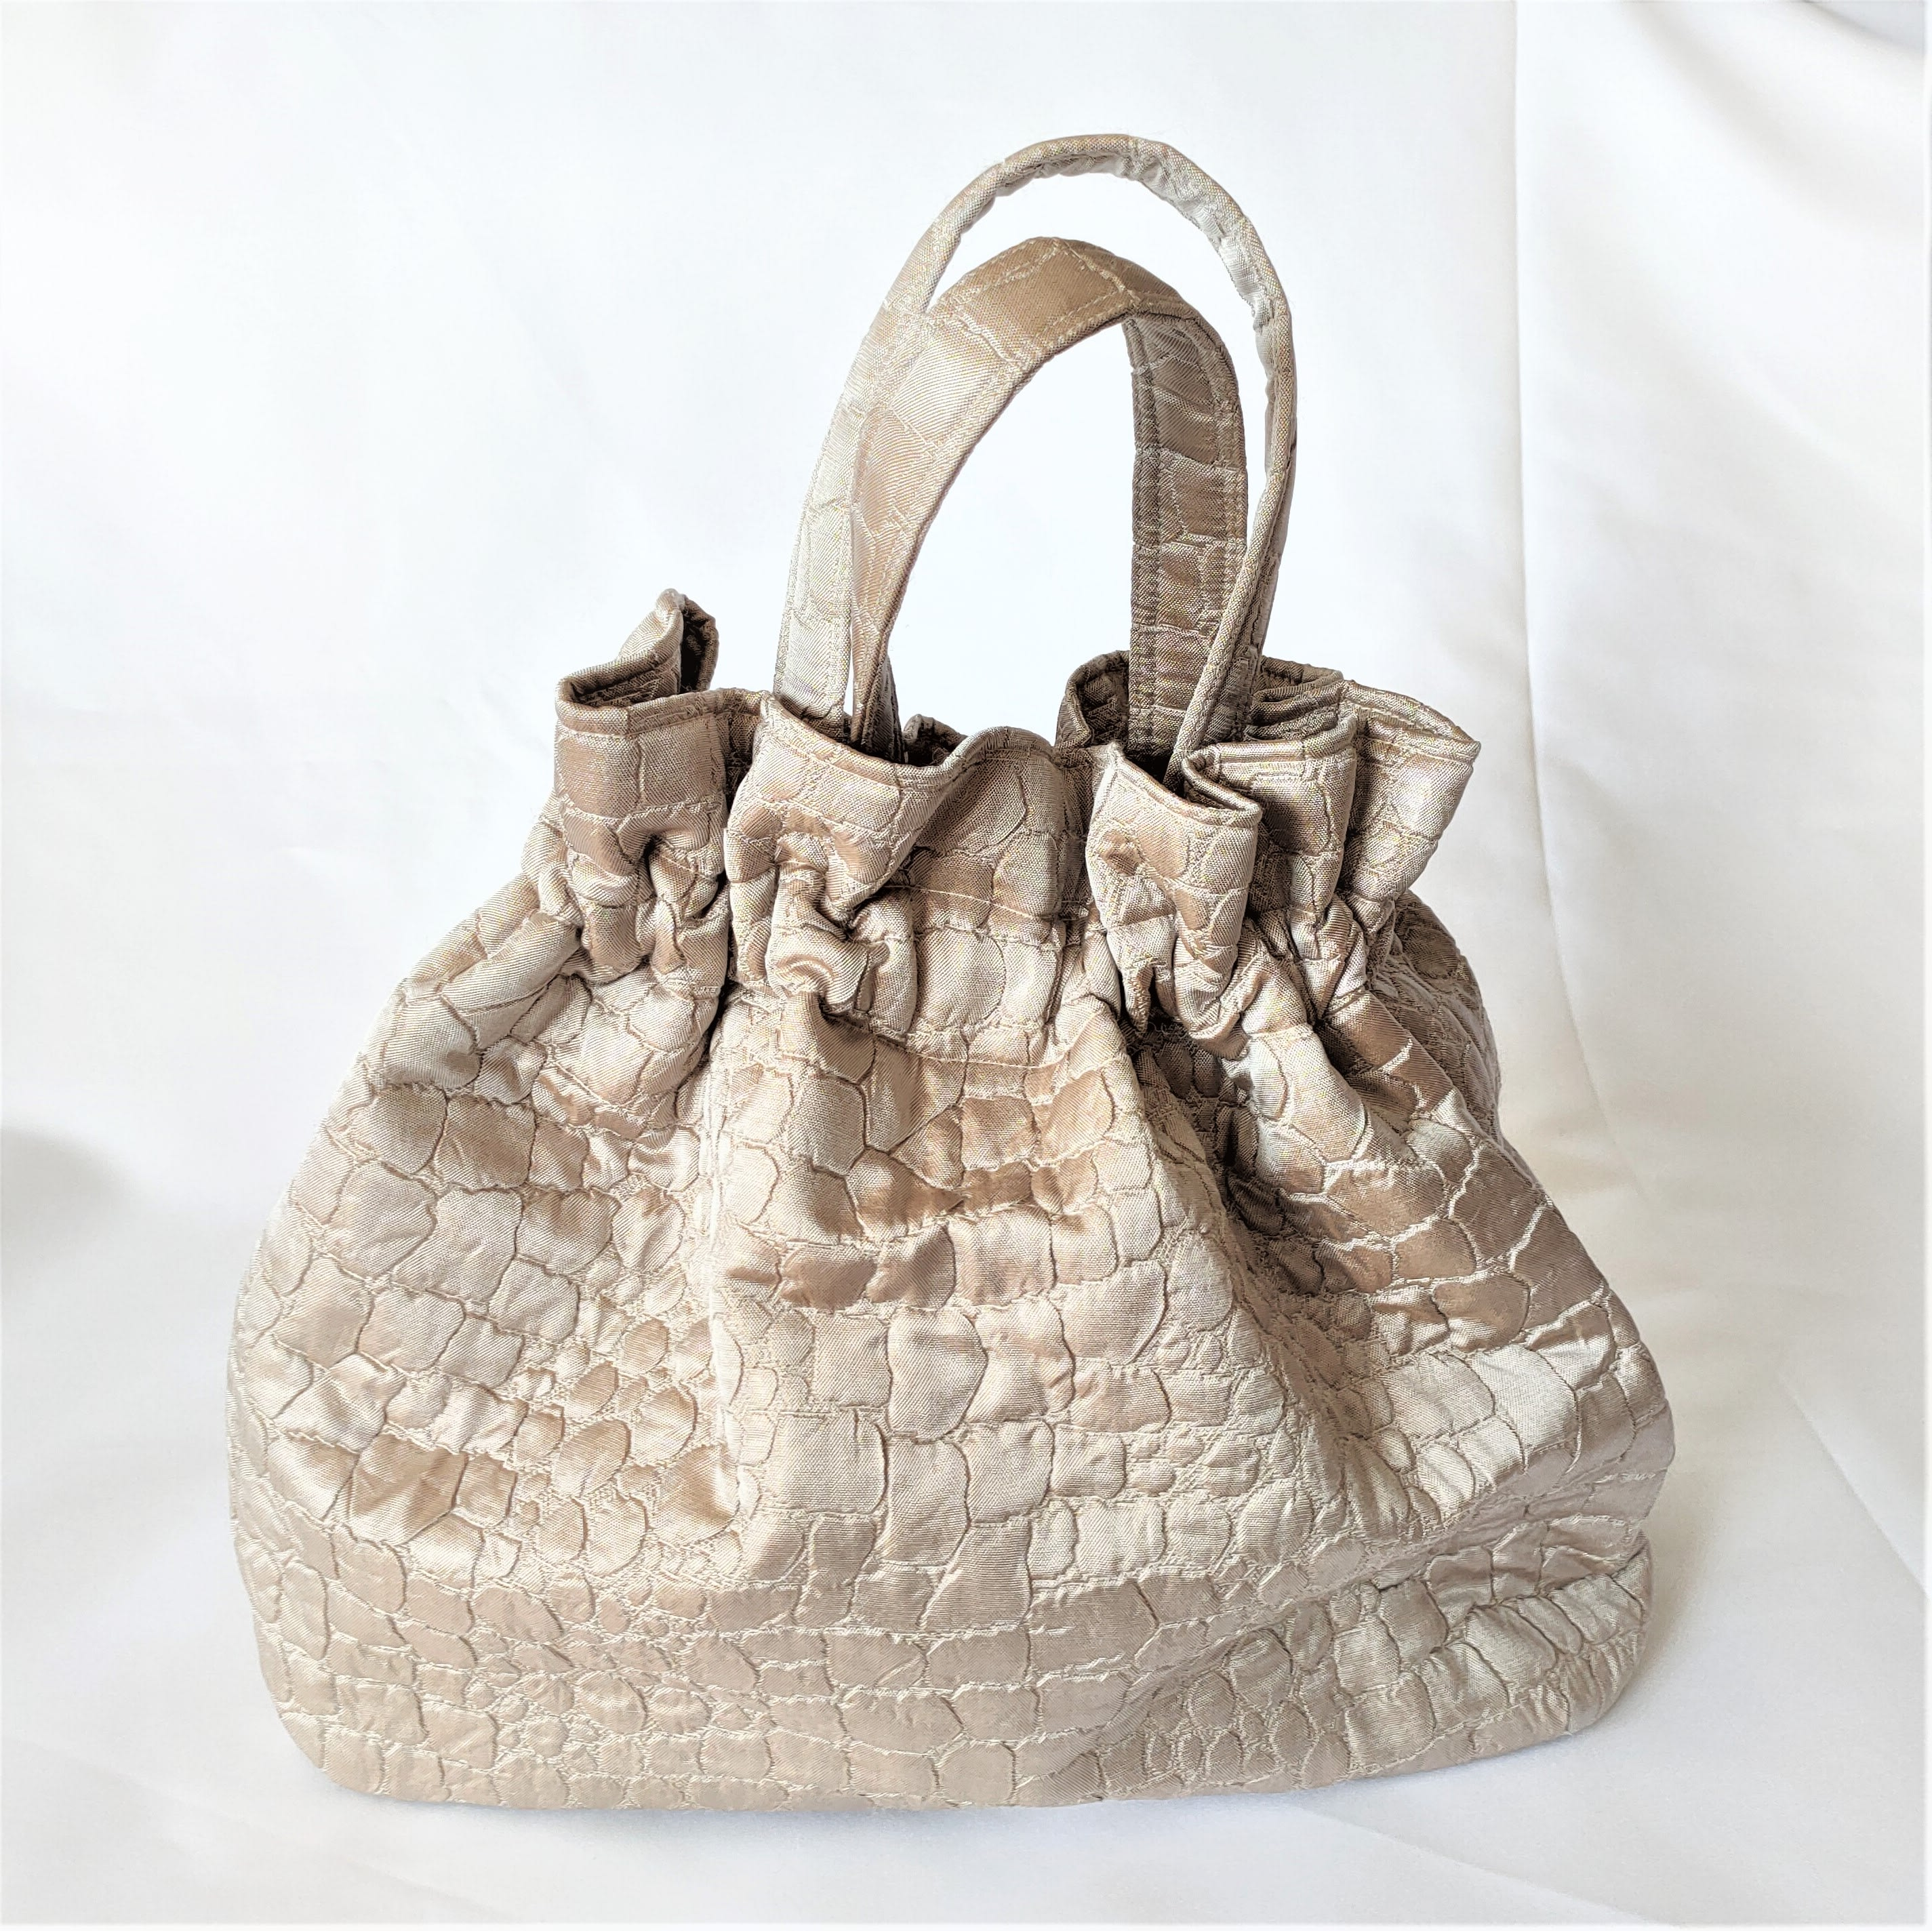 Fifties original beige purse. Crocodile skin design vintage fabric bag with removable chain. Washable, handmade.